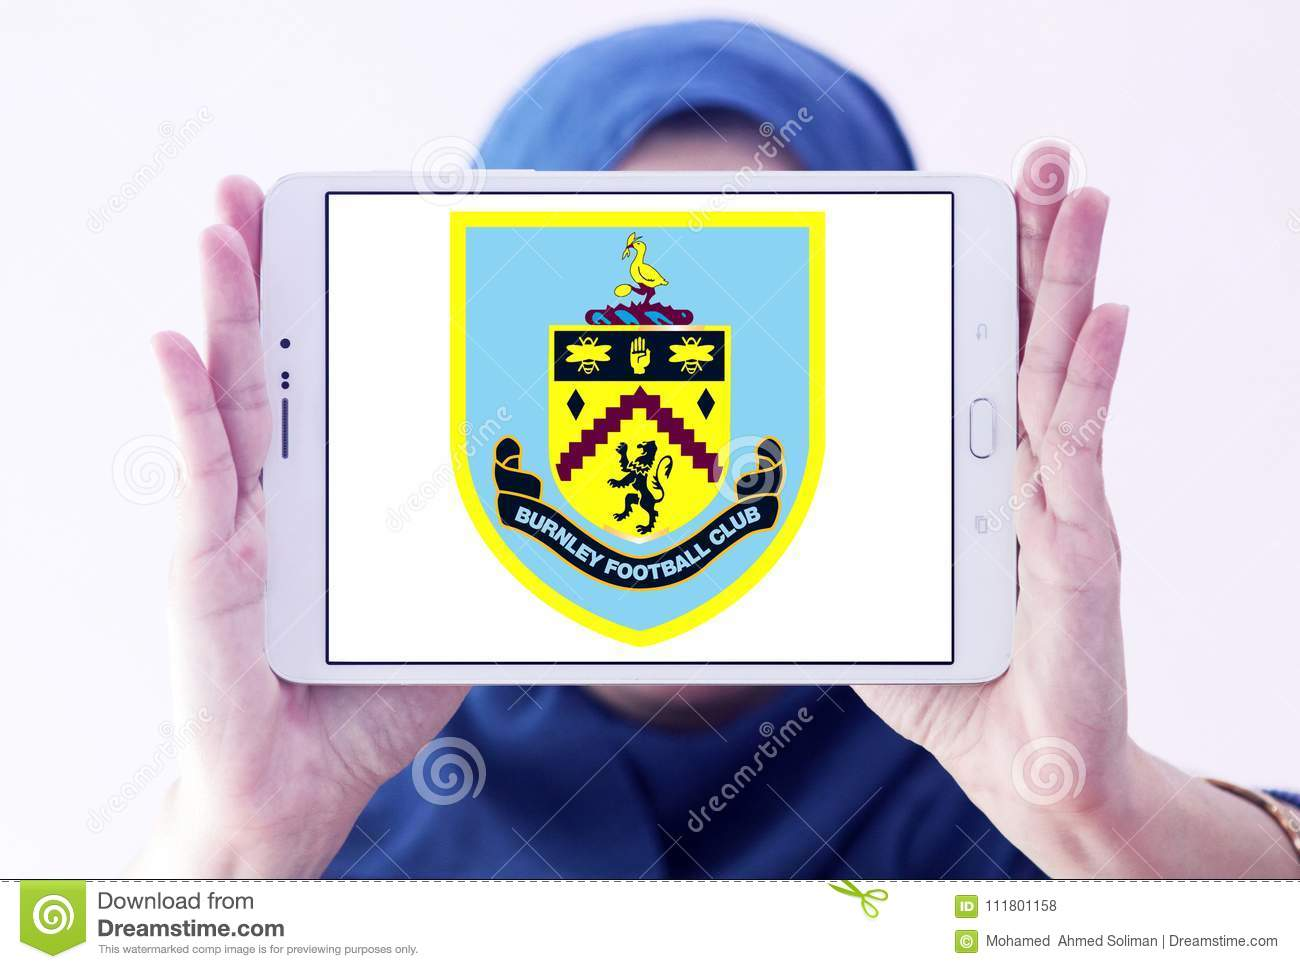 Burnley F C Fussball Verein Logo Redaktionelles Stockfoto